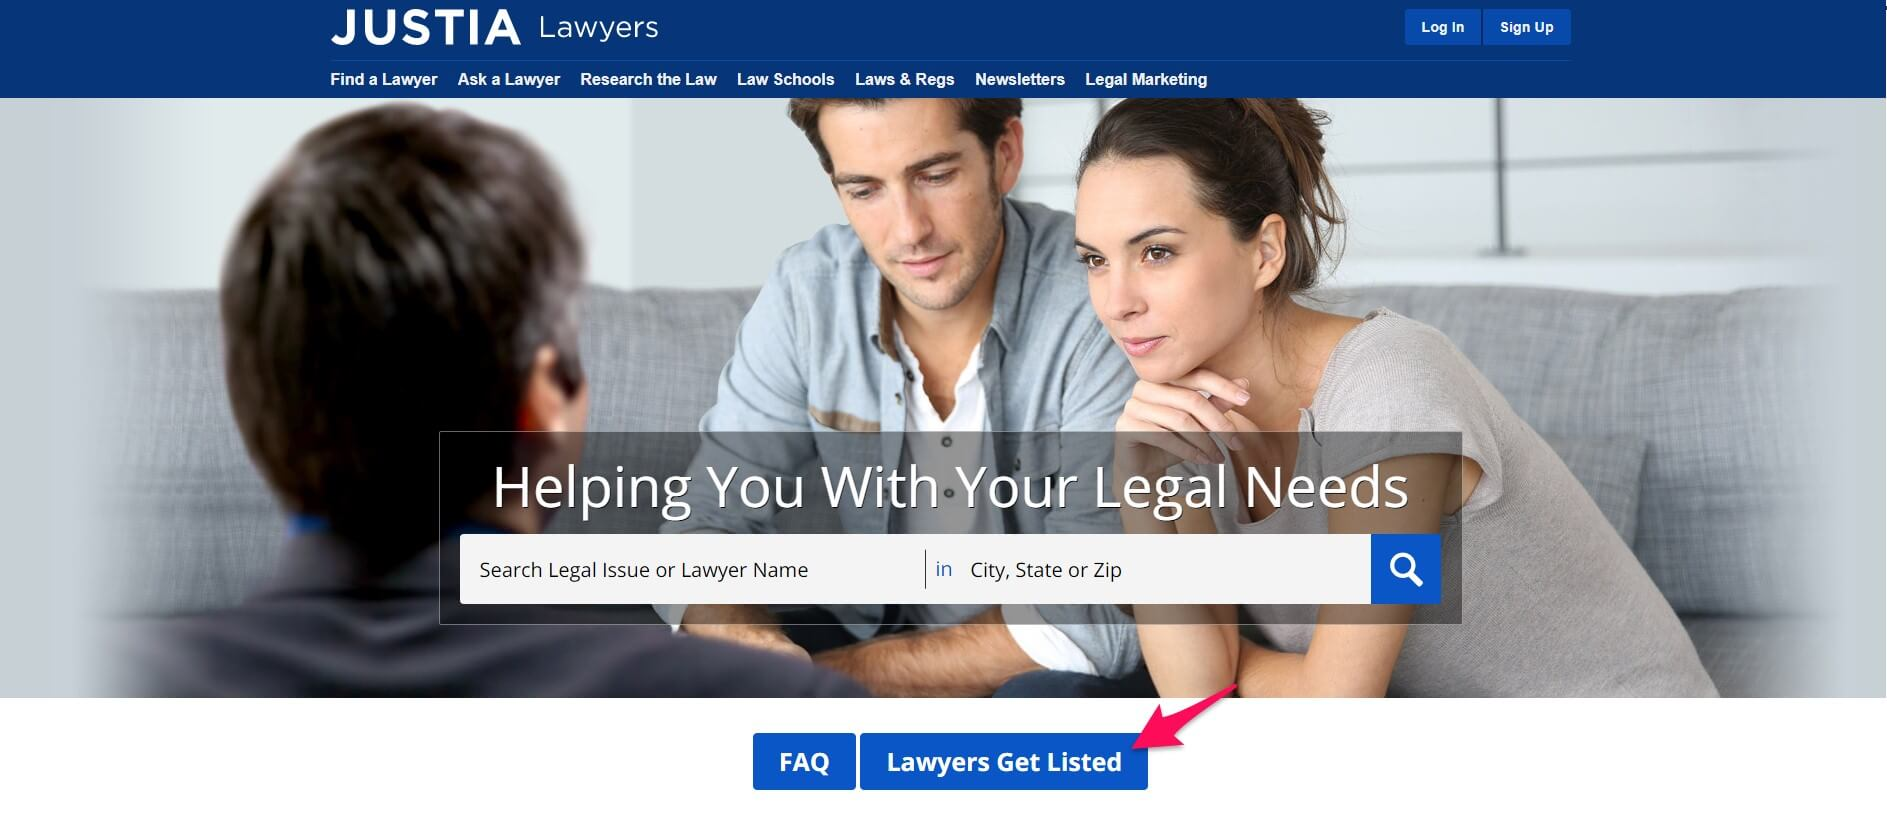 Justia is an online legal directory